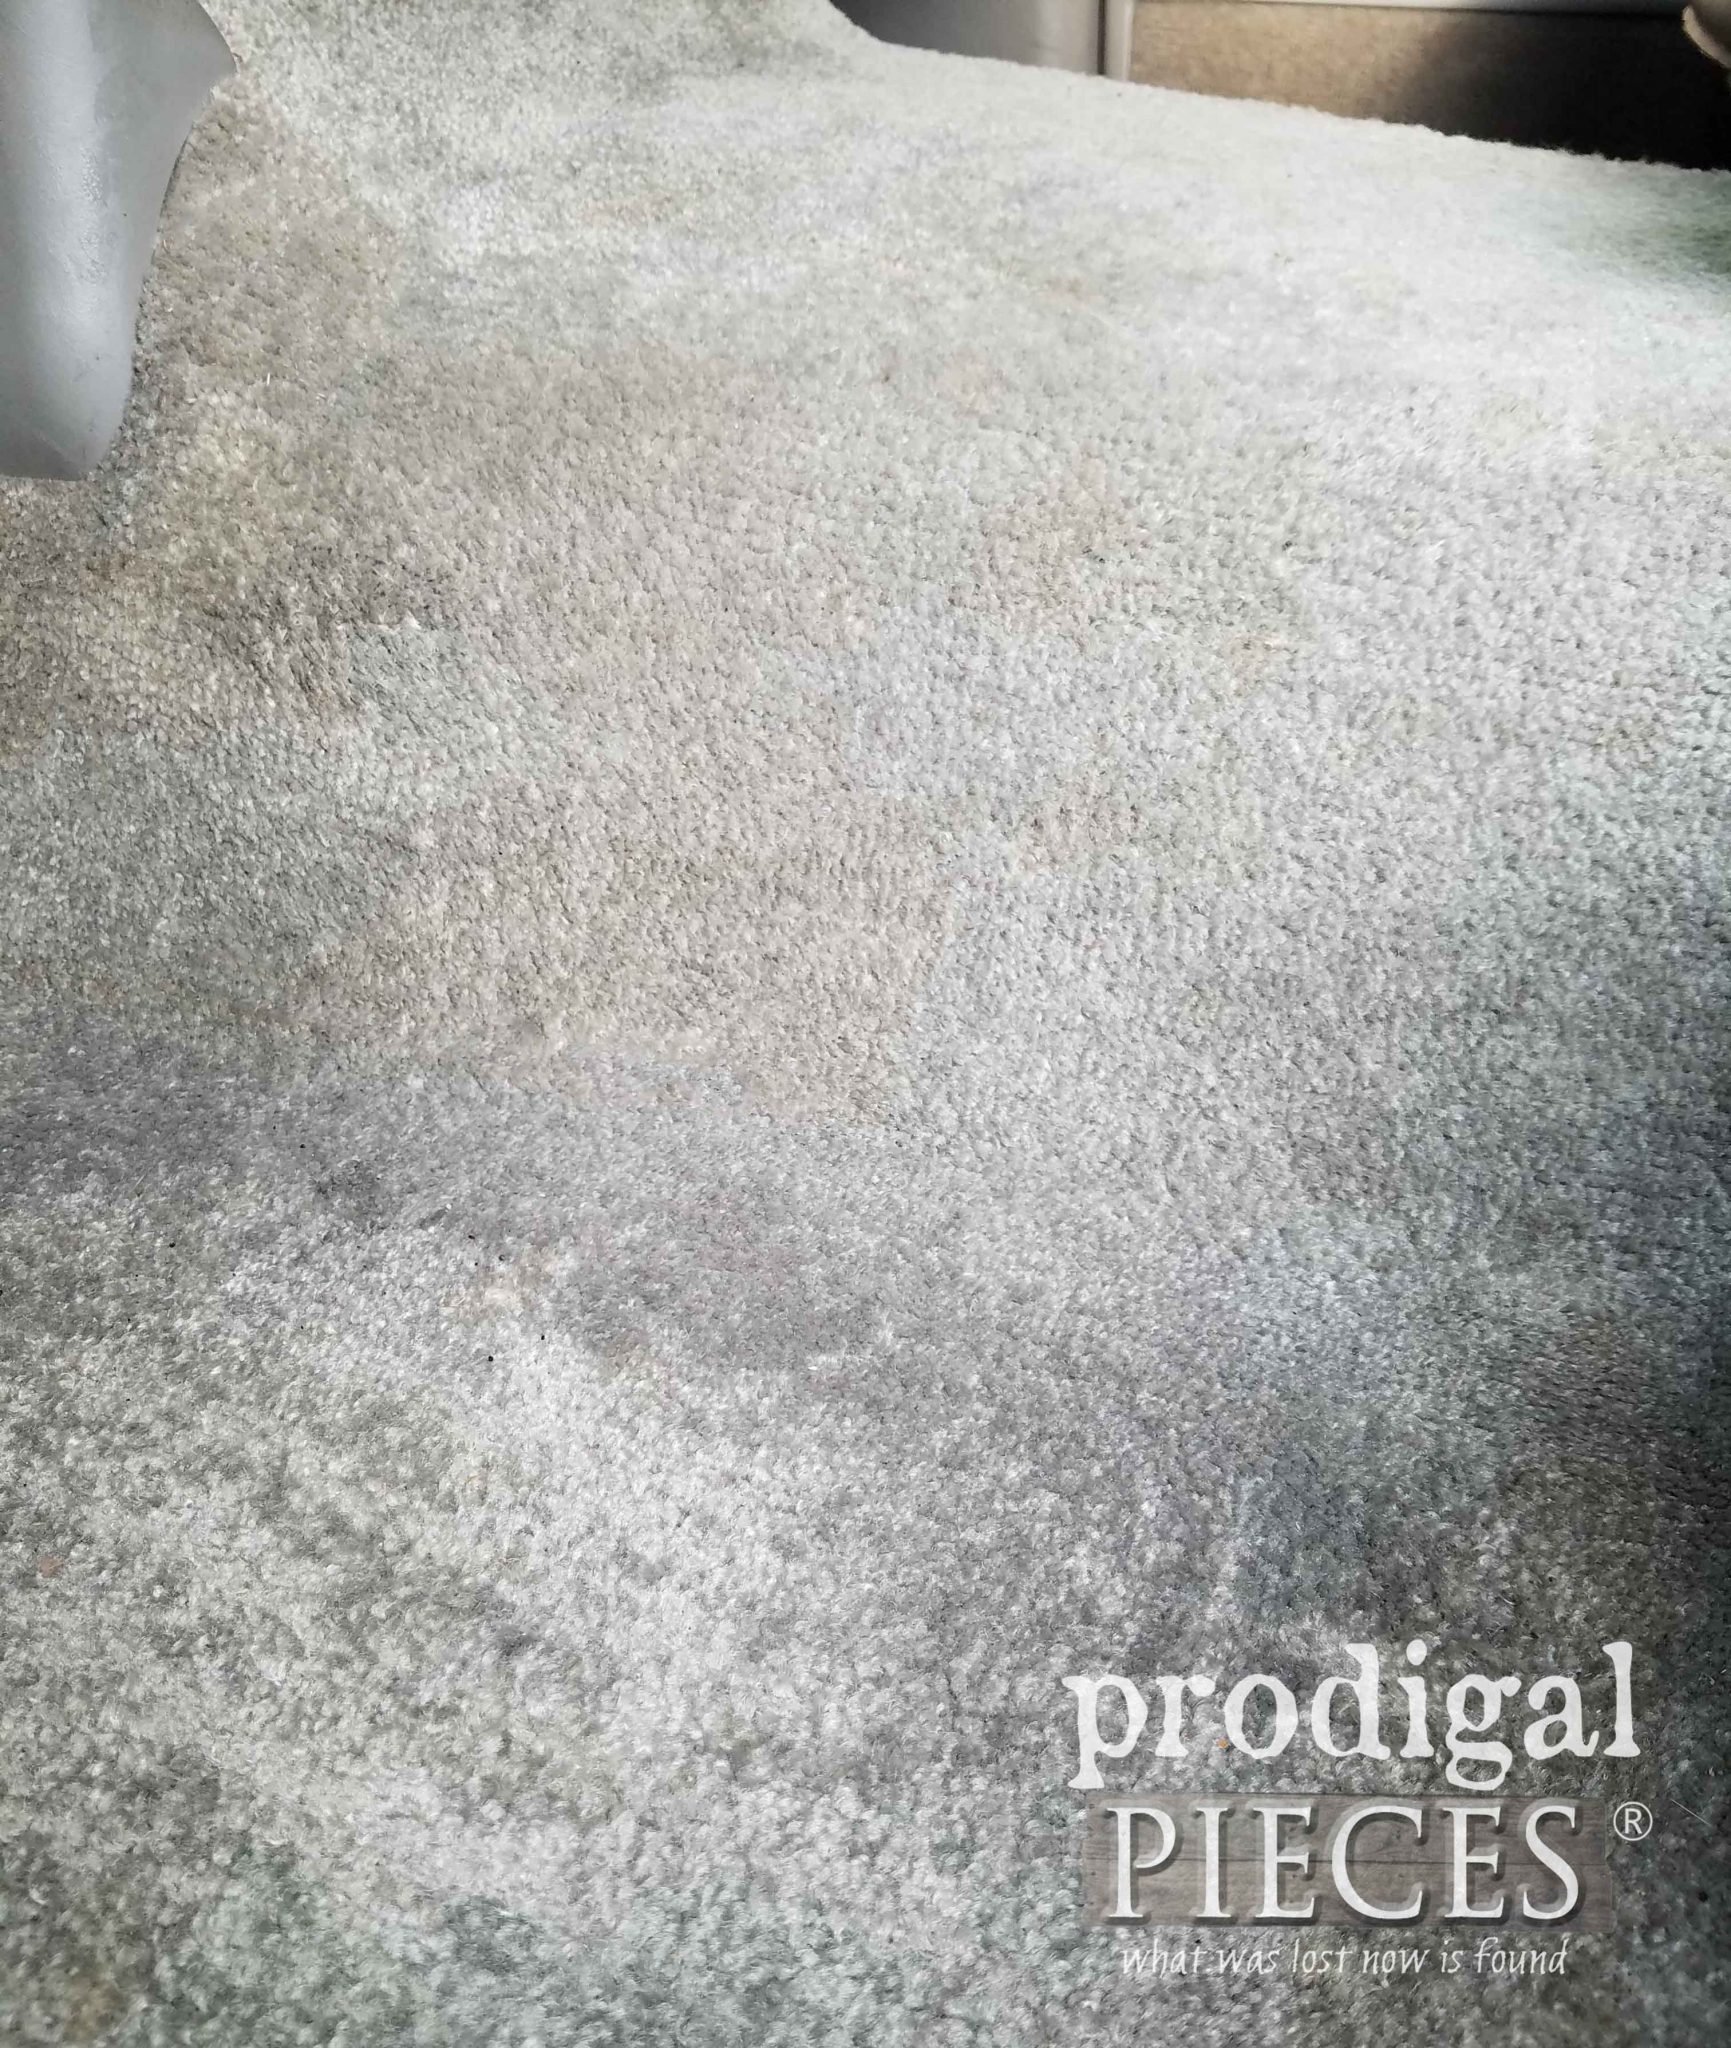 Truck Carpet Cleaning Closeup | prodigalpieces.com